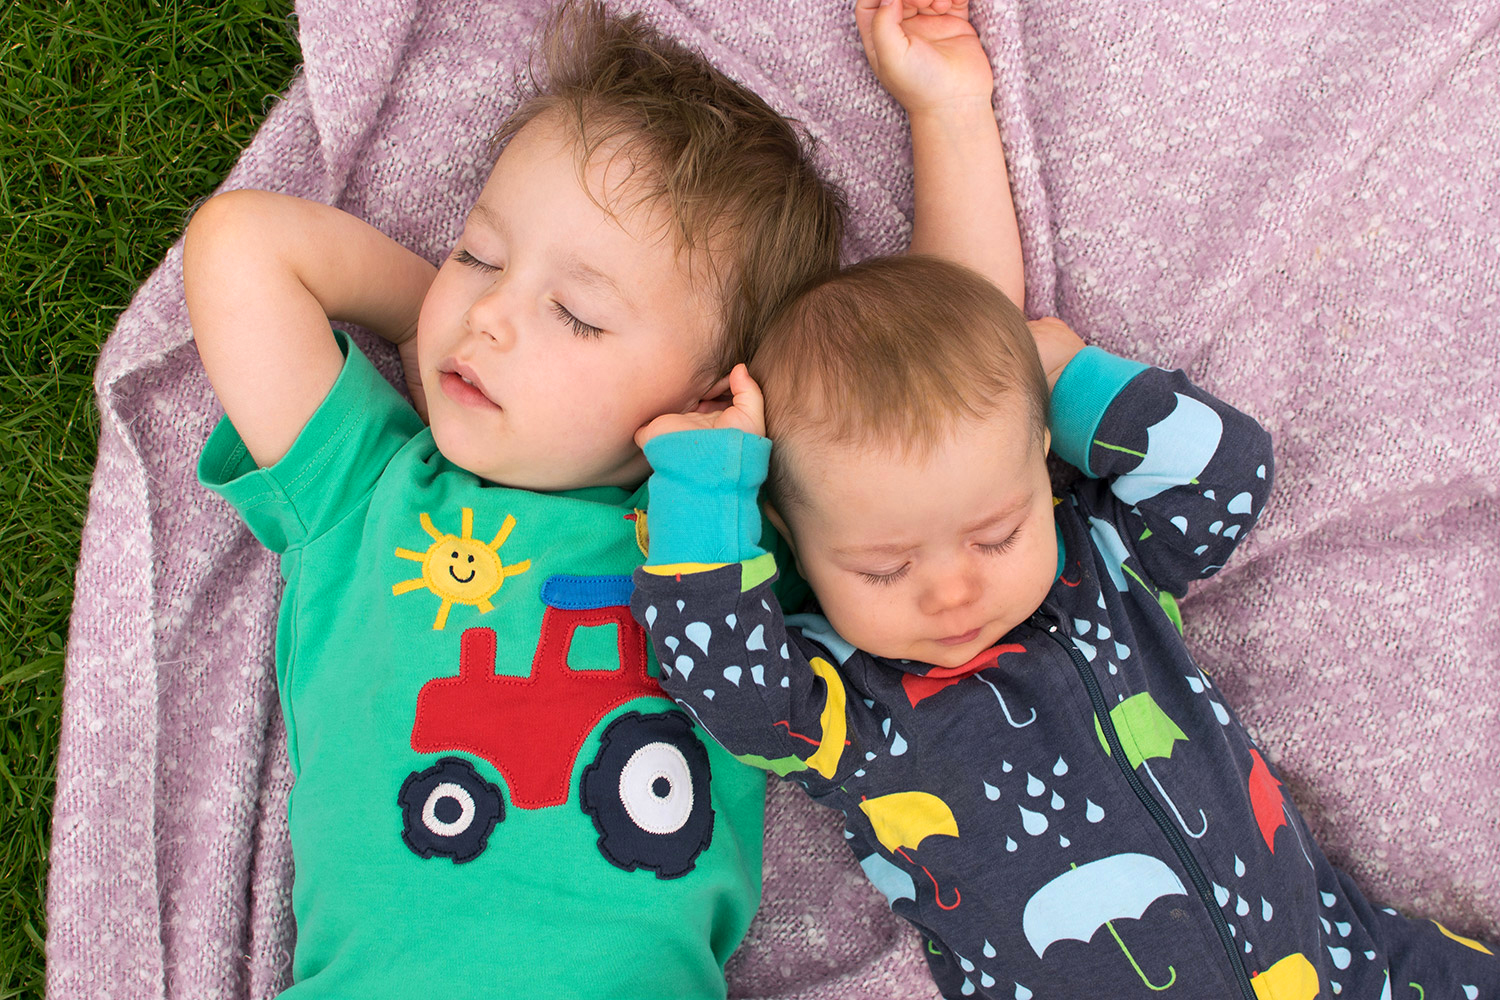 Siblings   July 2017 - 3 year old and 10 month old baby brothers and siblings wearing Frugi green tractor t-shirt and Duns Sweden umbrella print onesie sleeping on a blanket at a picnic outside on a Summer's day